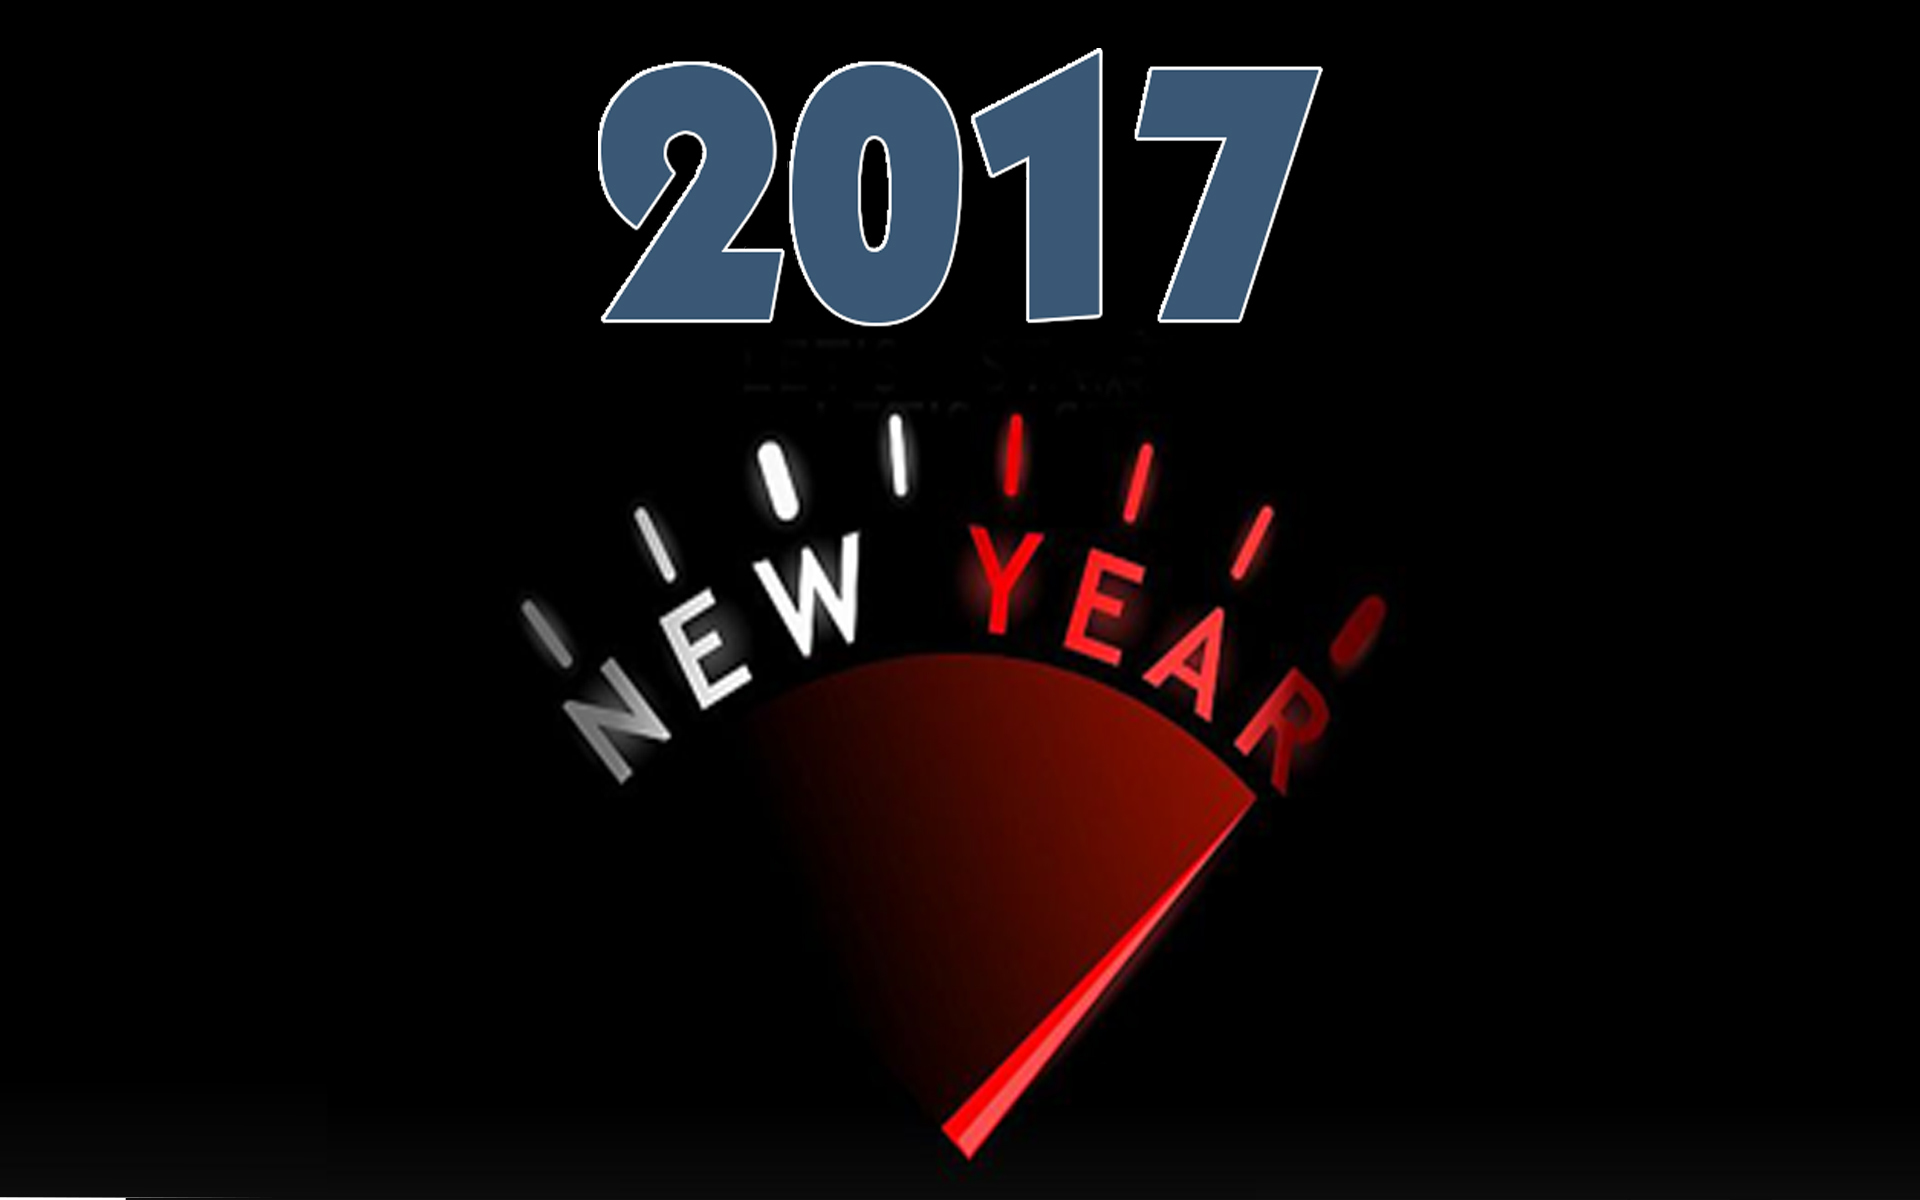 Happy New Year Hd Images Wallpapers Photos 2017 Free Download